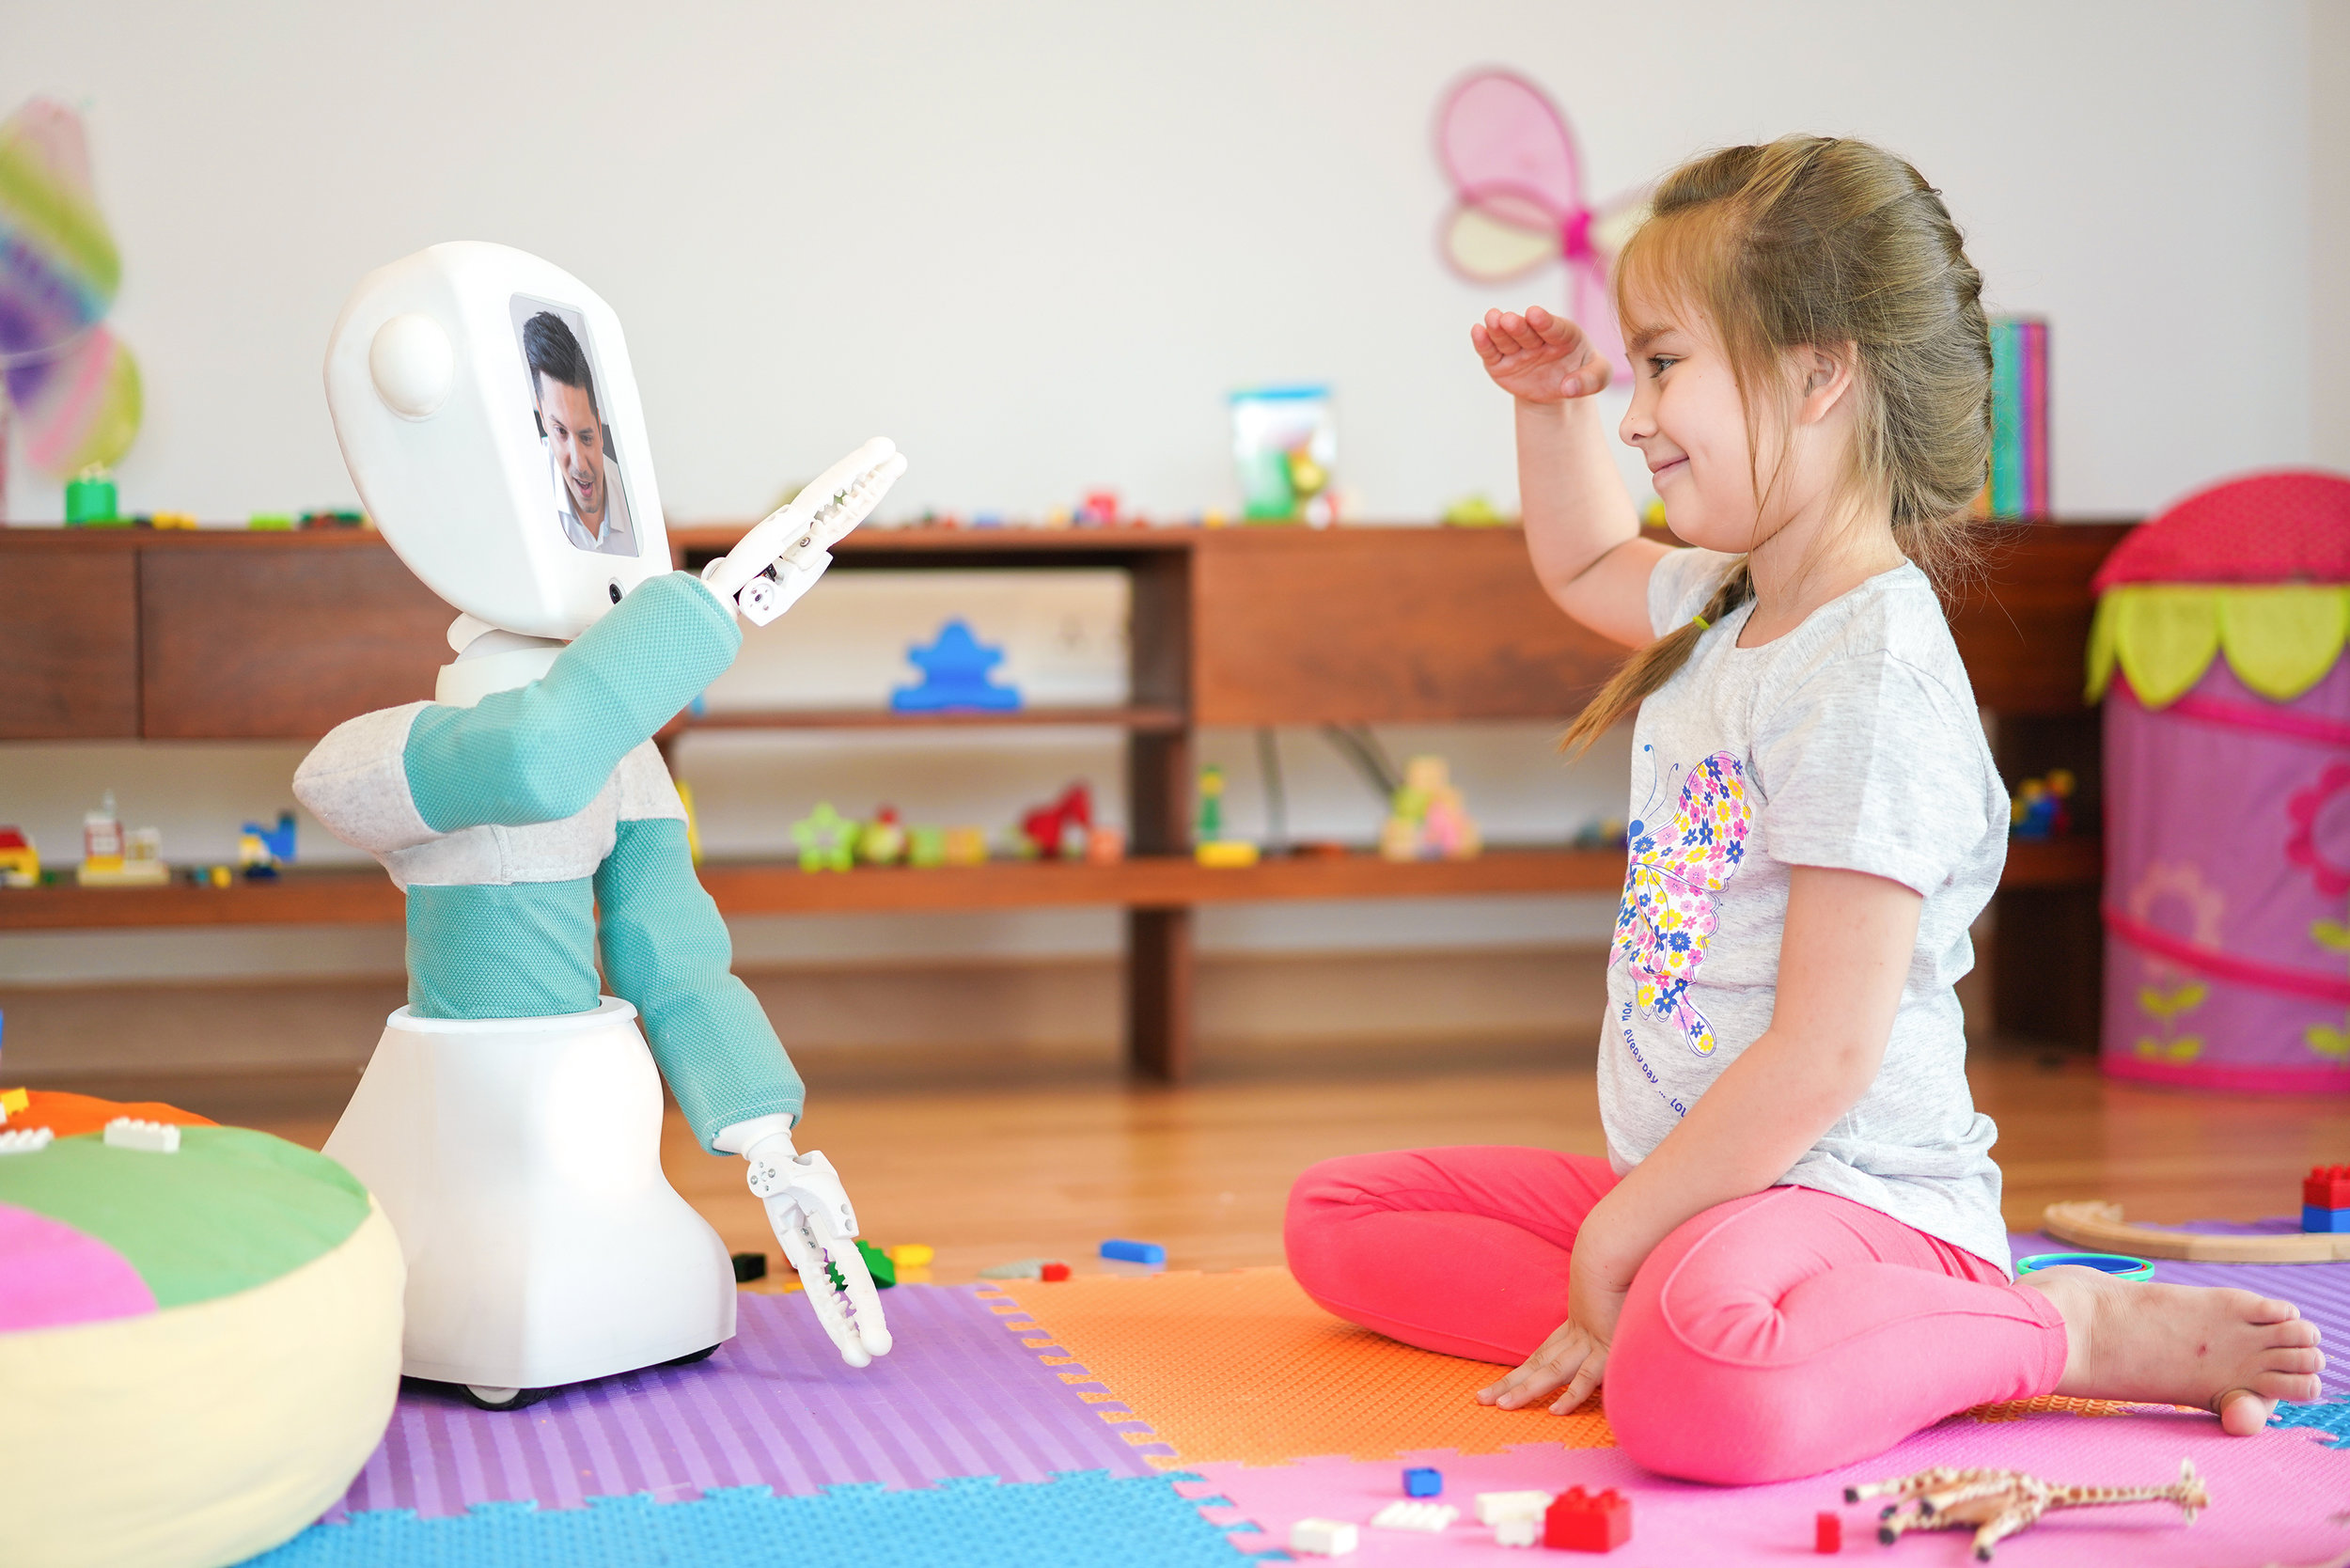 Ready to Go! - With your online account connected to the robot, you are free to call the robot anytime it is online! When the child answers the call, the robot will be yours to control!